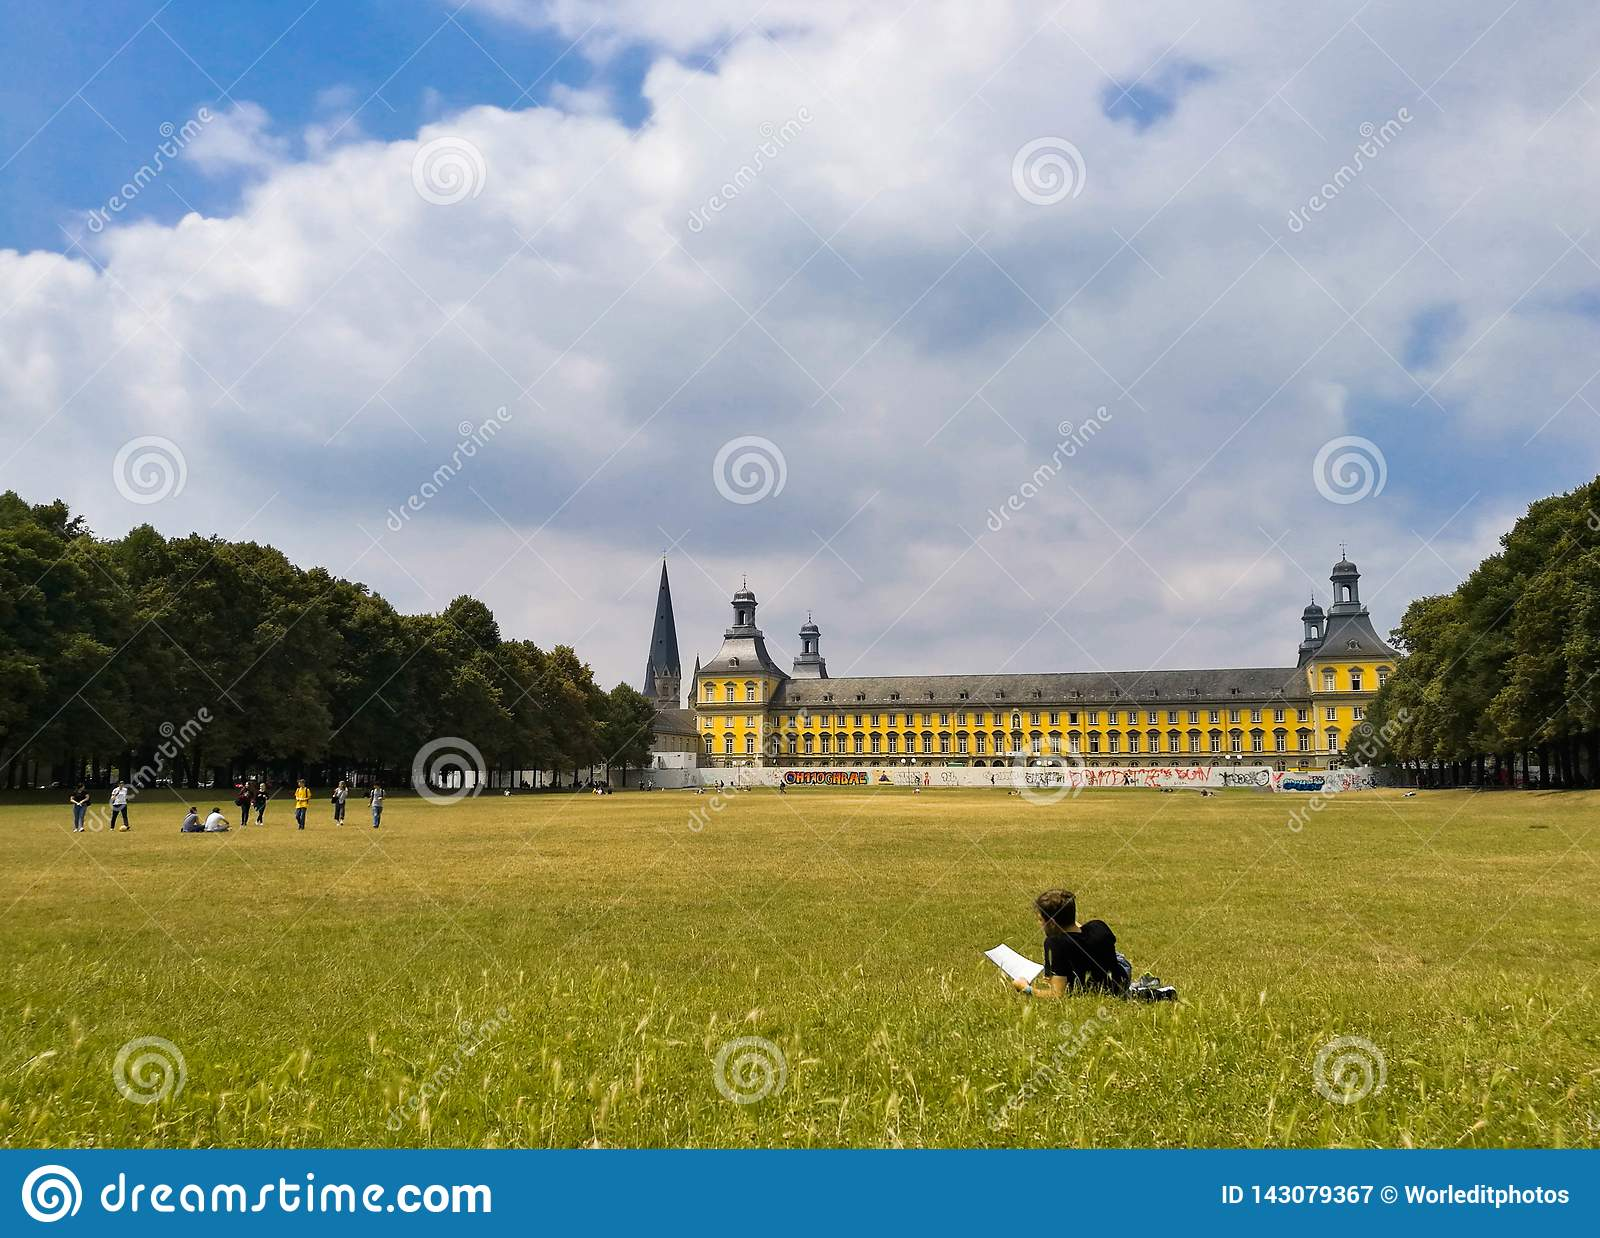 Young student resting on the grass reading a book